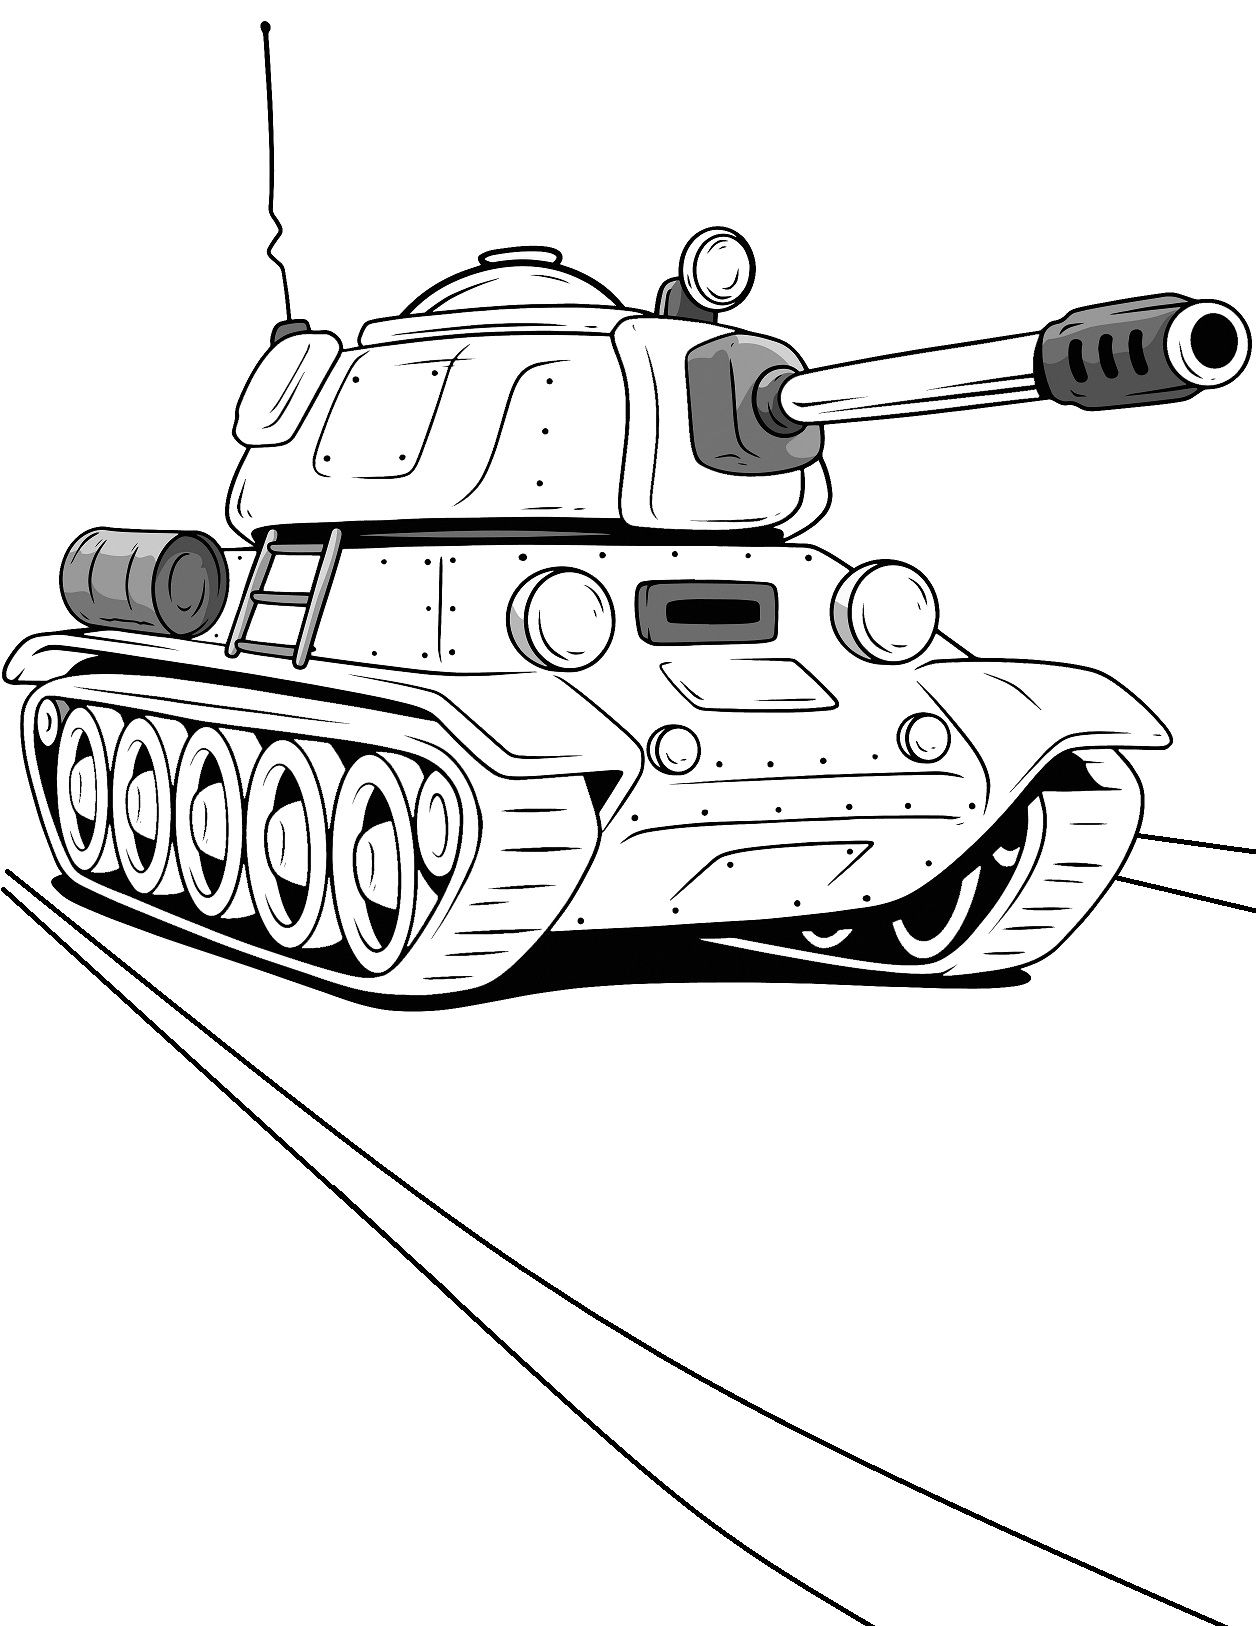 Military Coloring Book For Kids Coloring Books Coloring Pages For Boys Tanks Military